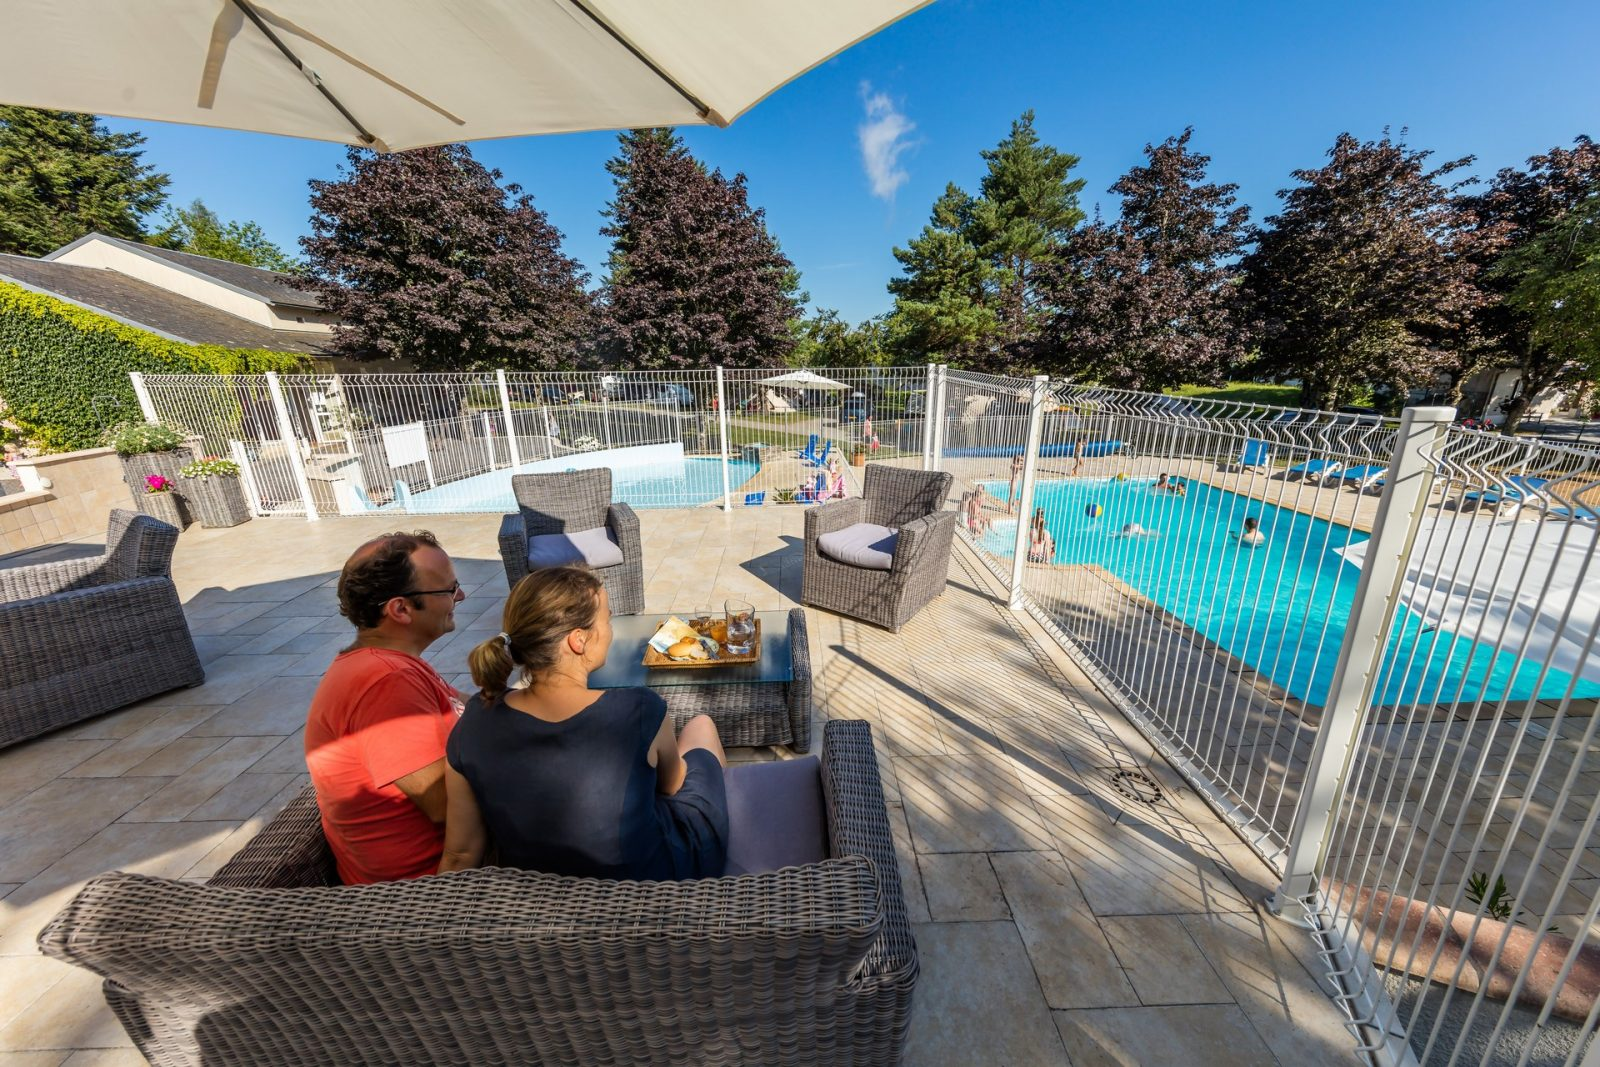 Camping le plo le bez camping tarn tourisme for Camping a carcassonne avec piscine